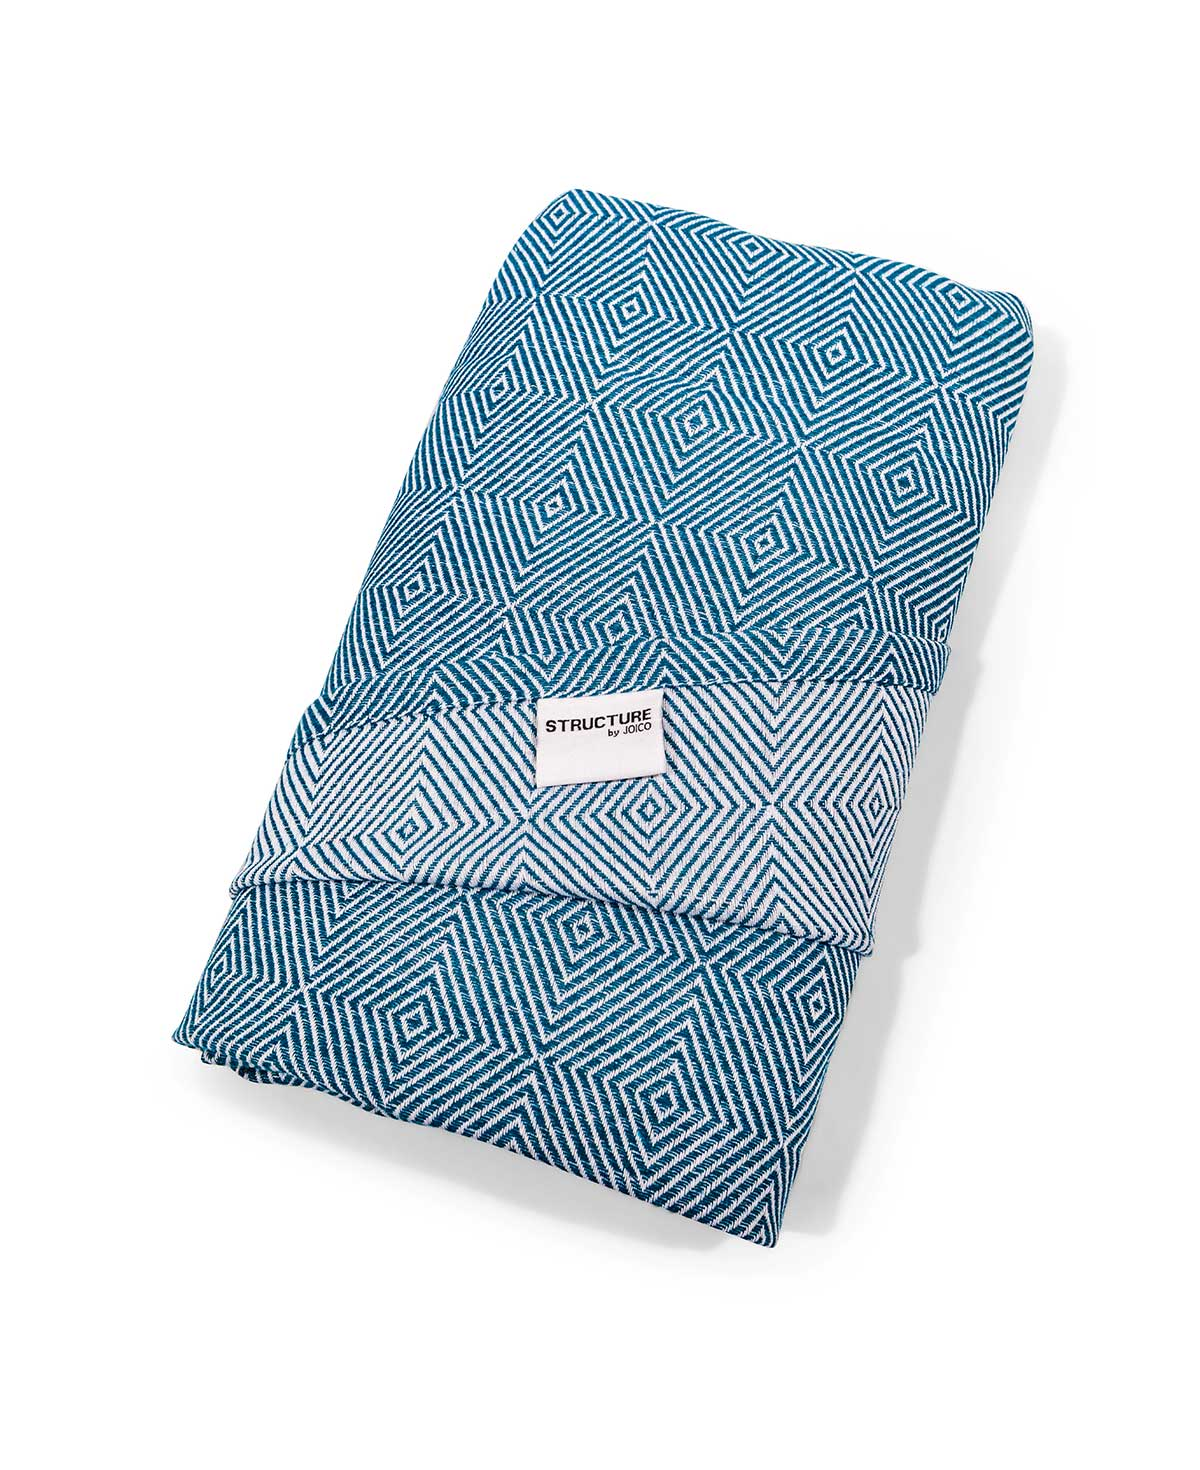 Joico Structure Beach Towel